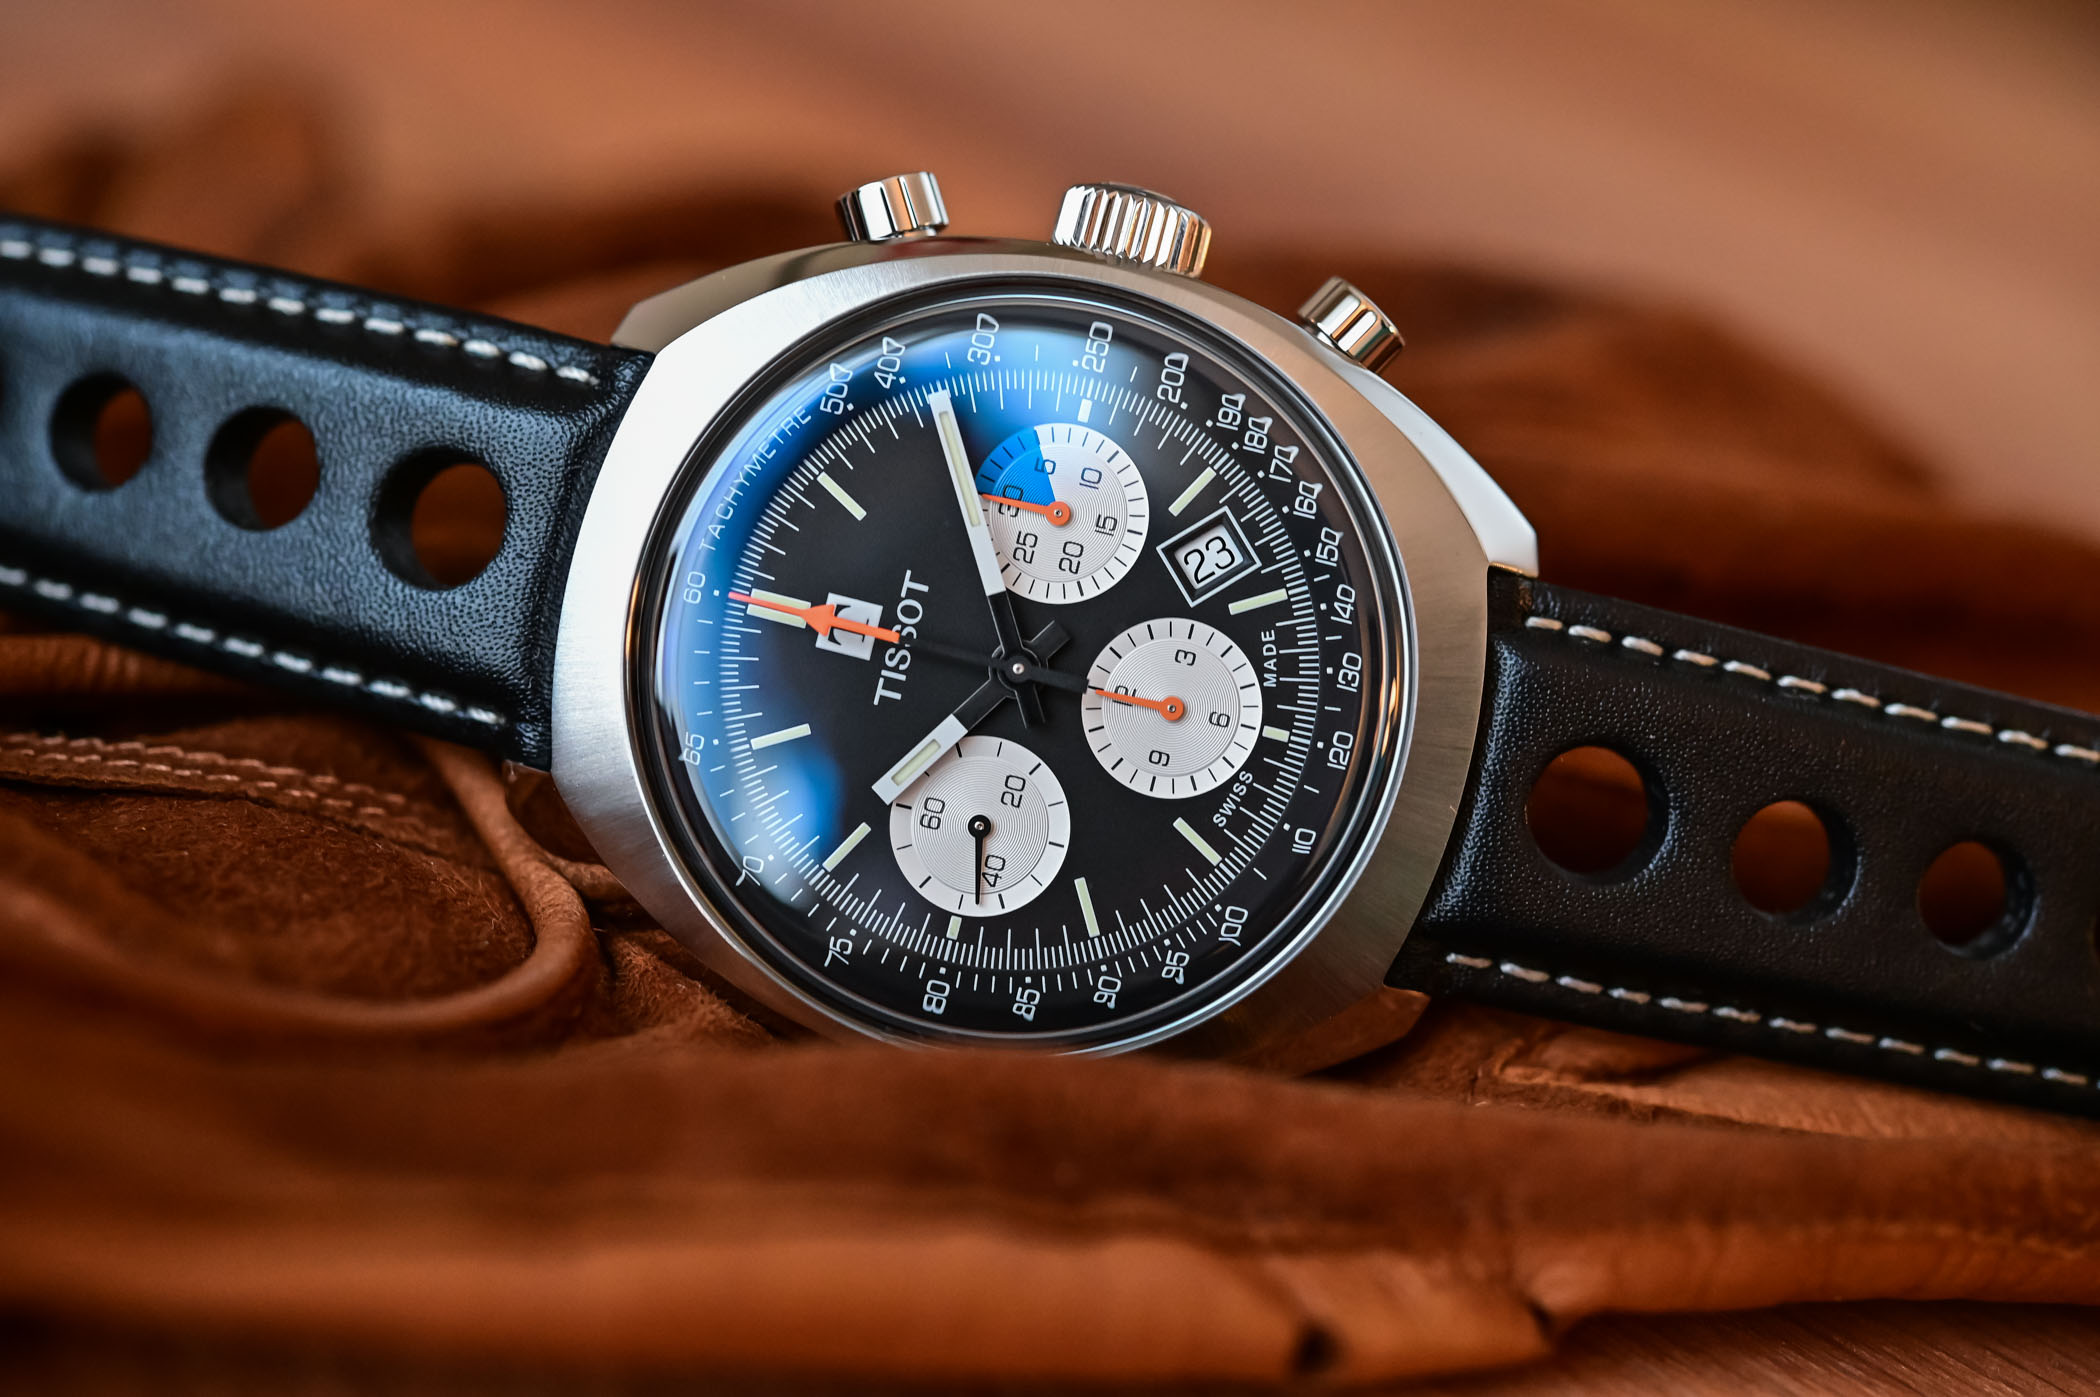 tissot heritage 1973 chronograph T124.427.16.051.00 review - 7